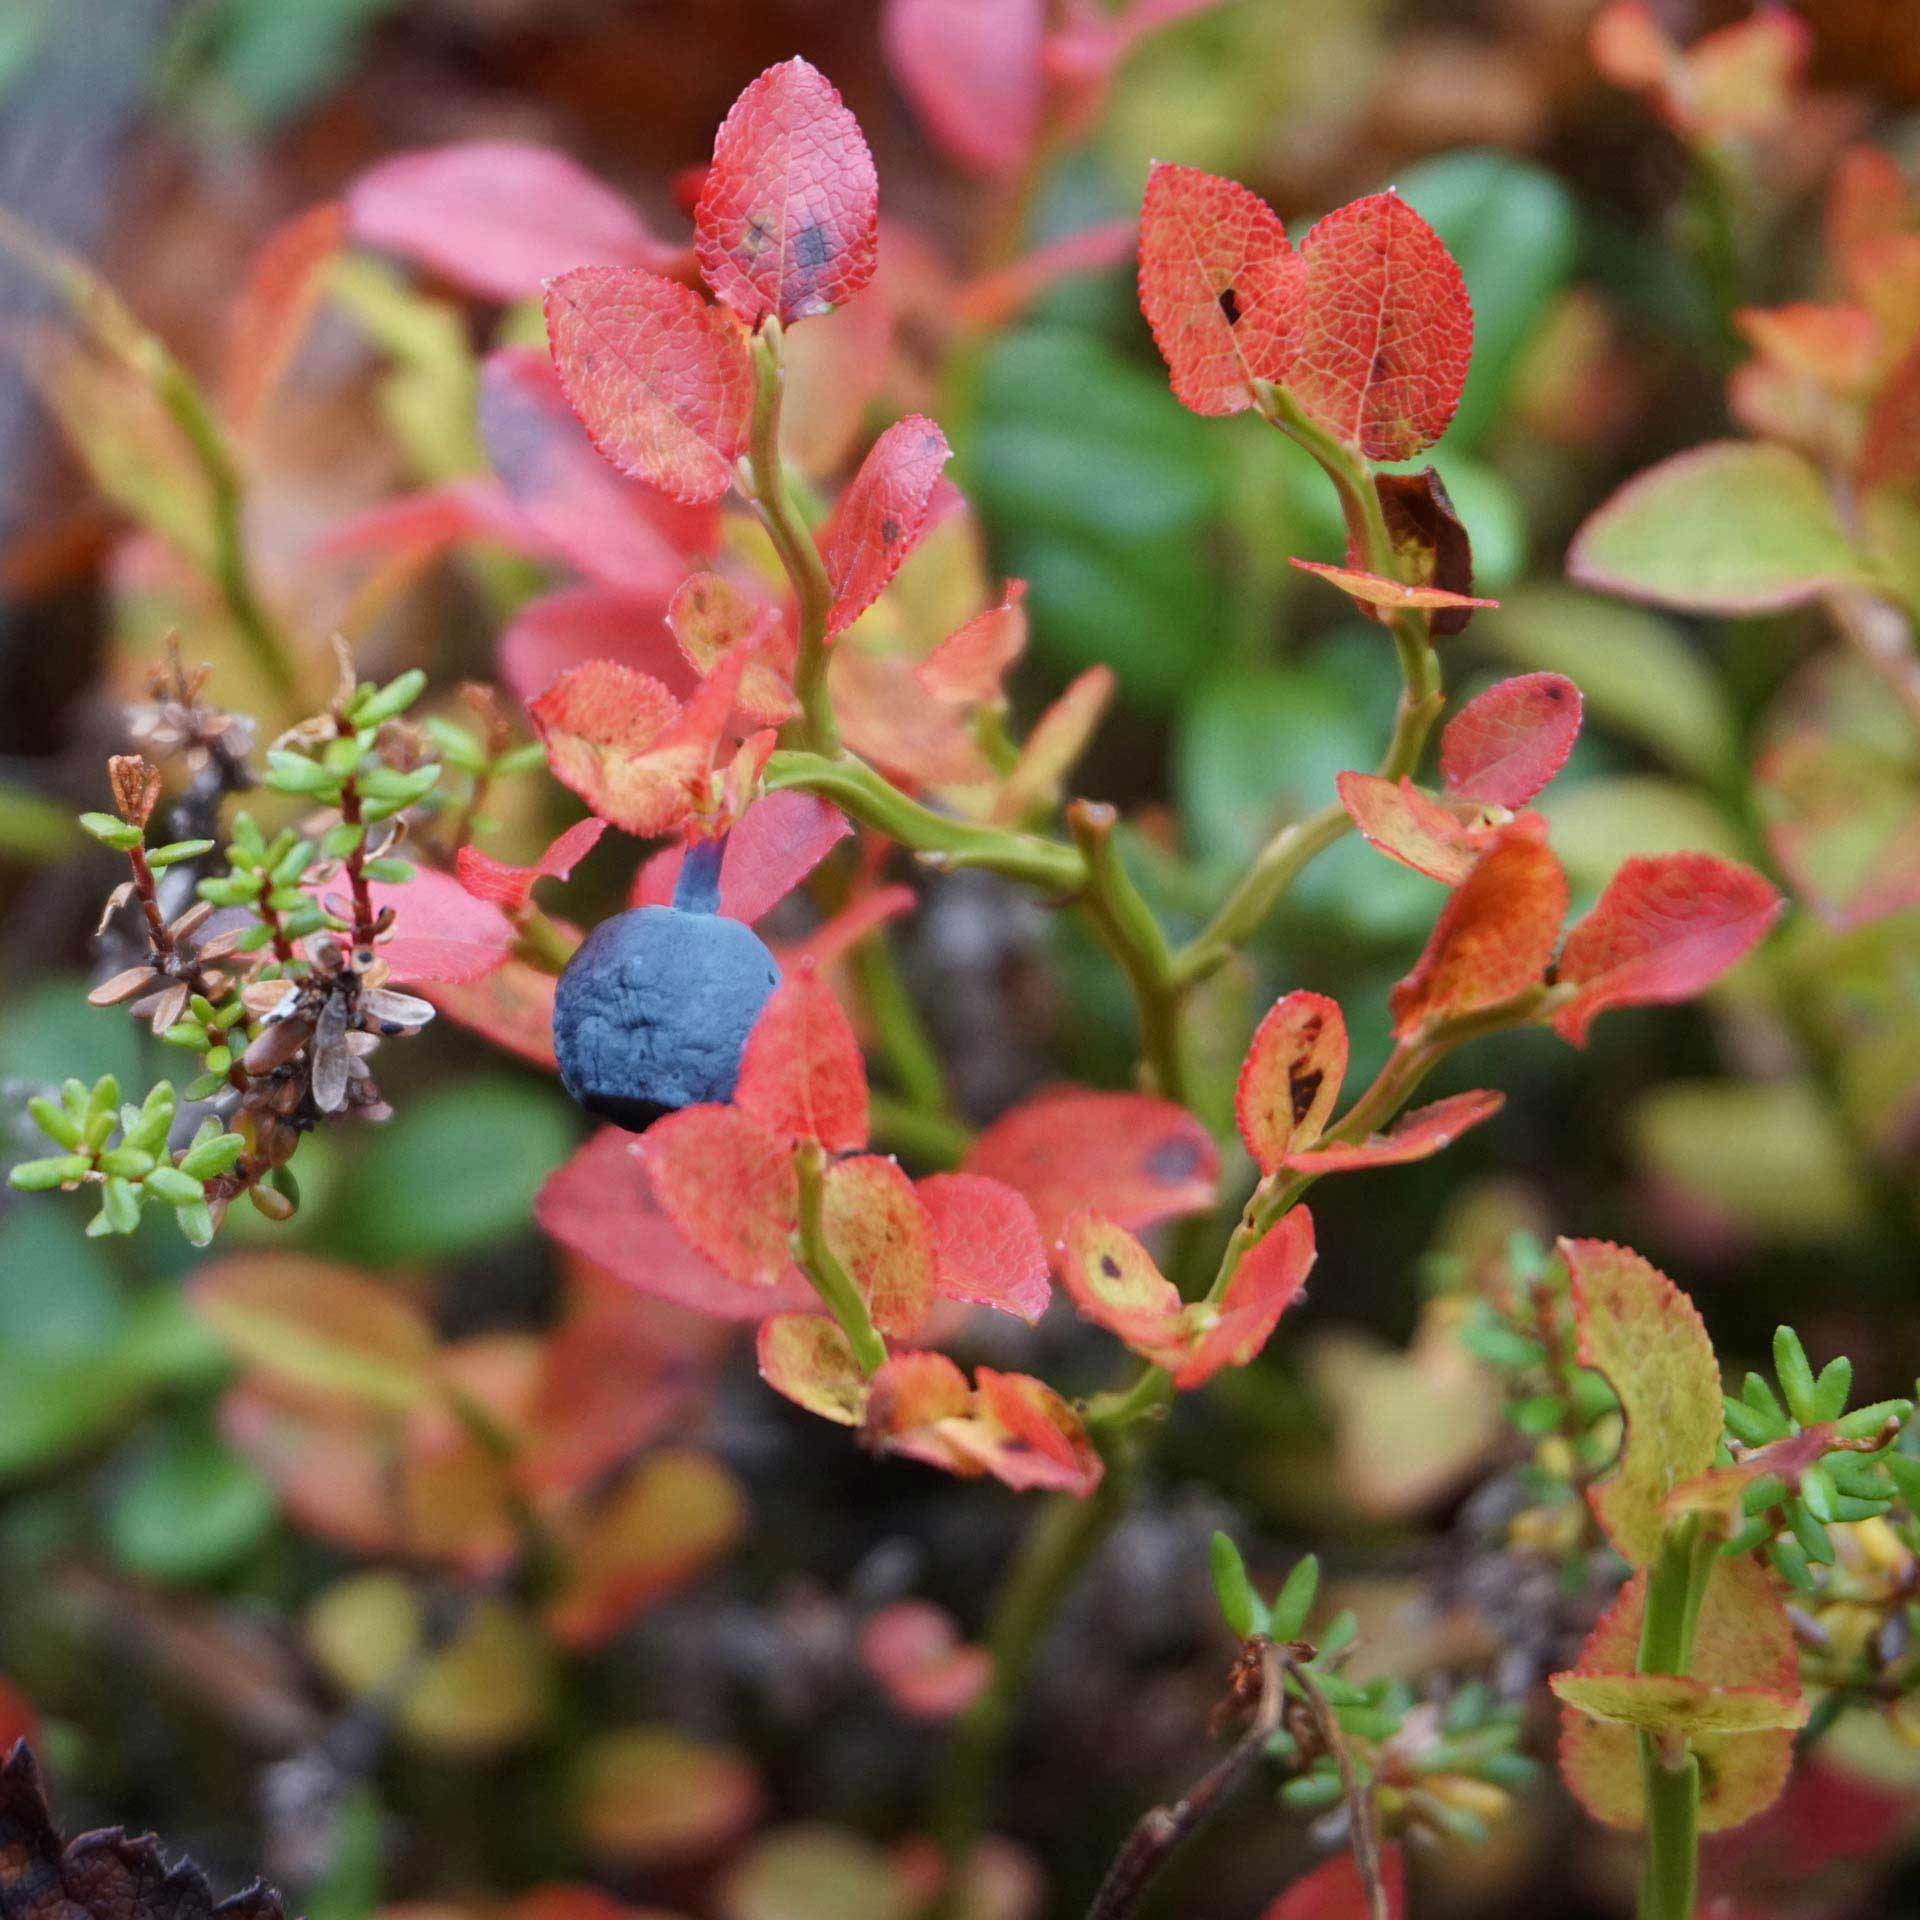 Bilberry growing on autumn leaves in Lapland.